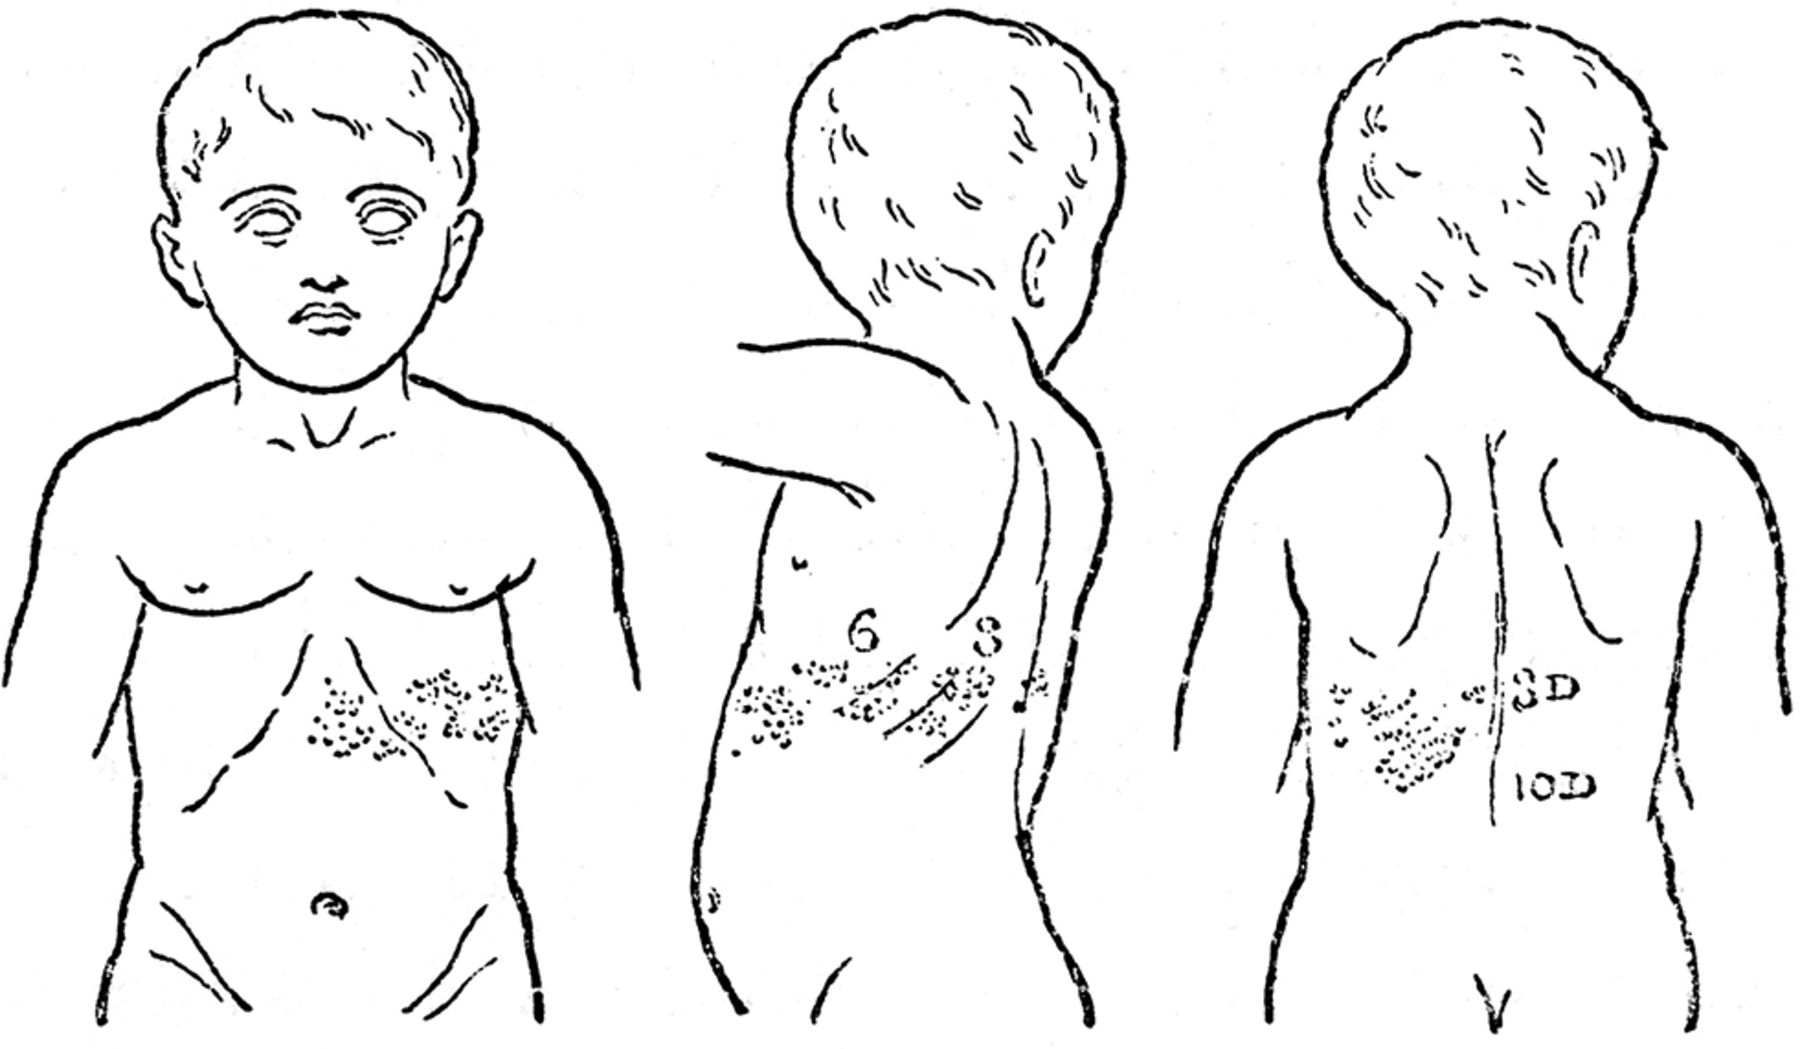 Henry Head Herpes Zoster And The Graphic Development Of His Scheme